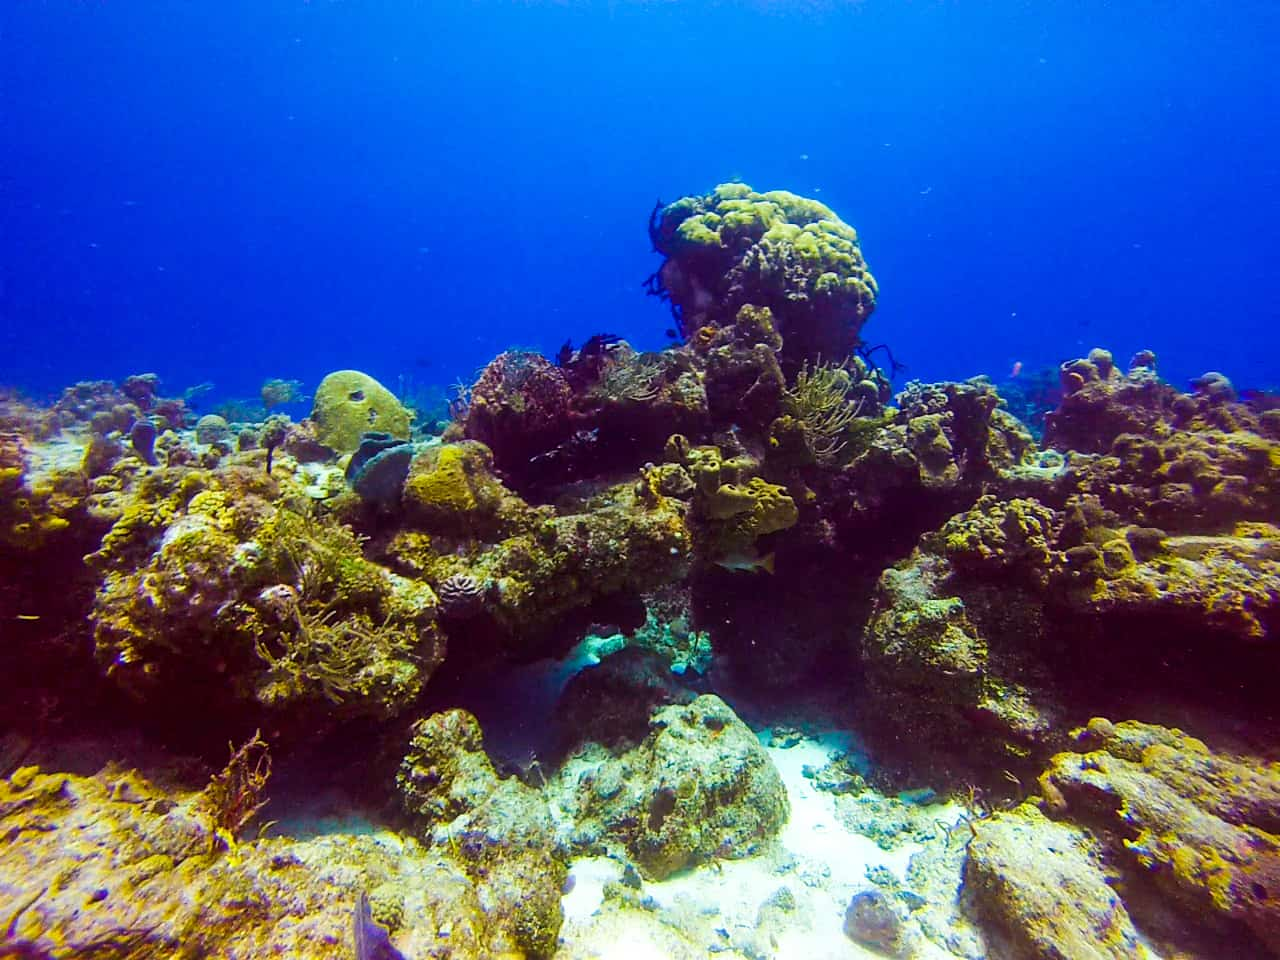 Aquatic adventures diving in cozumel two for the world - Cozumel dive sites ...